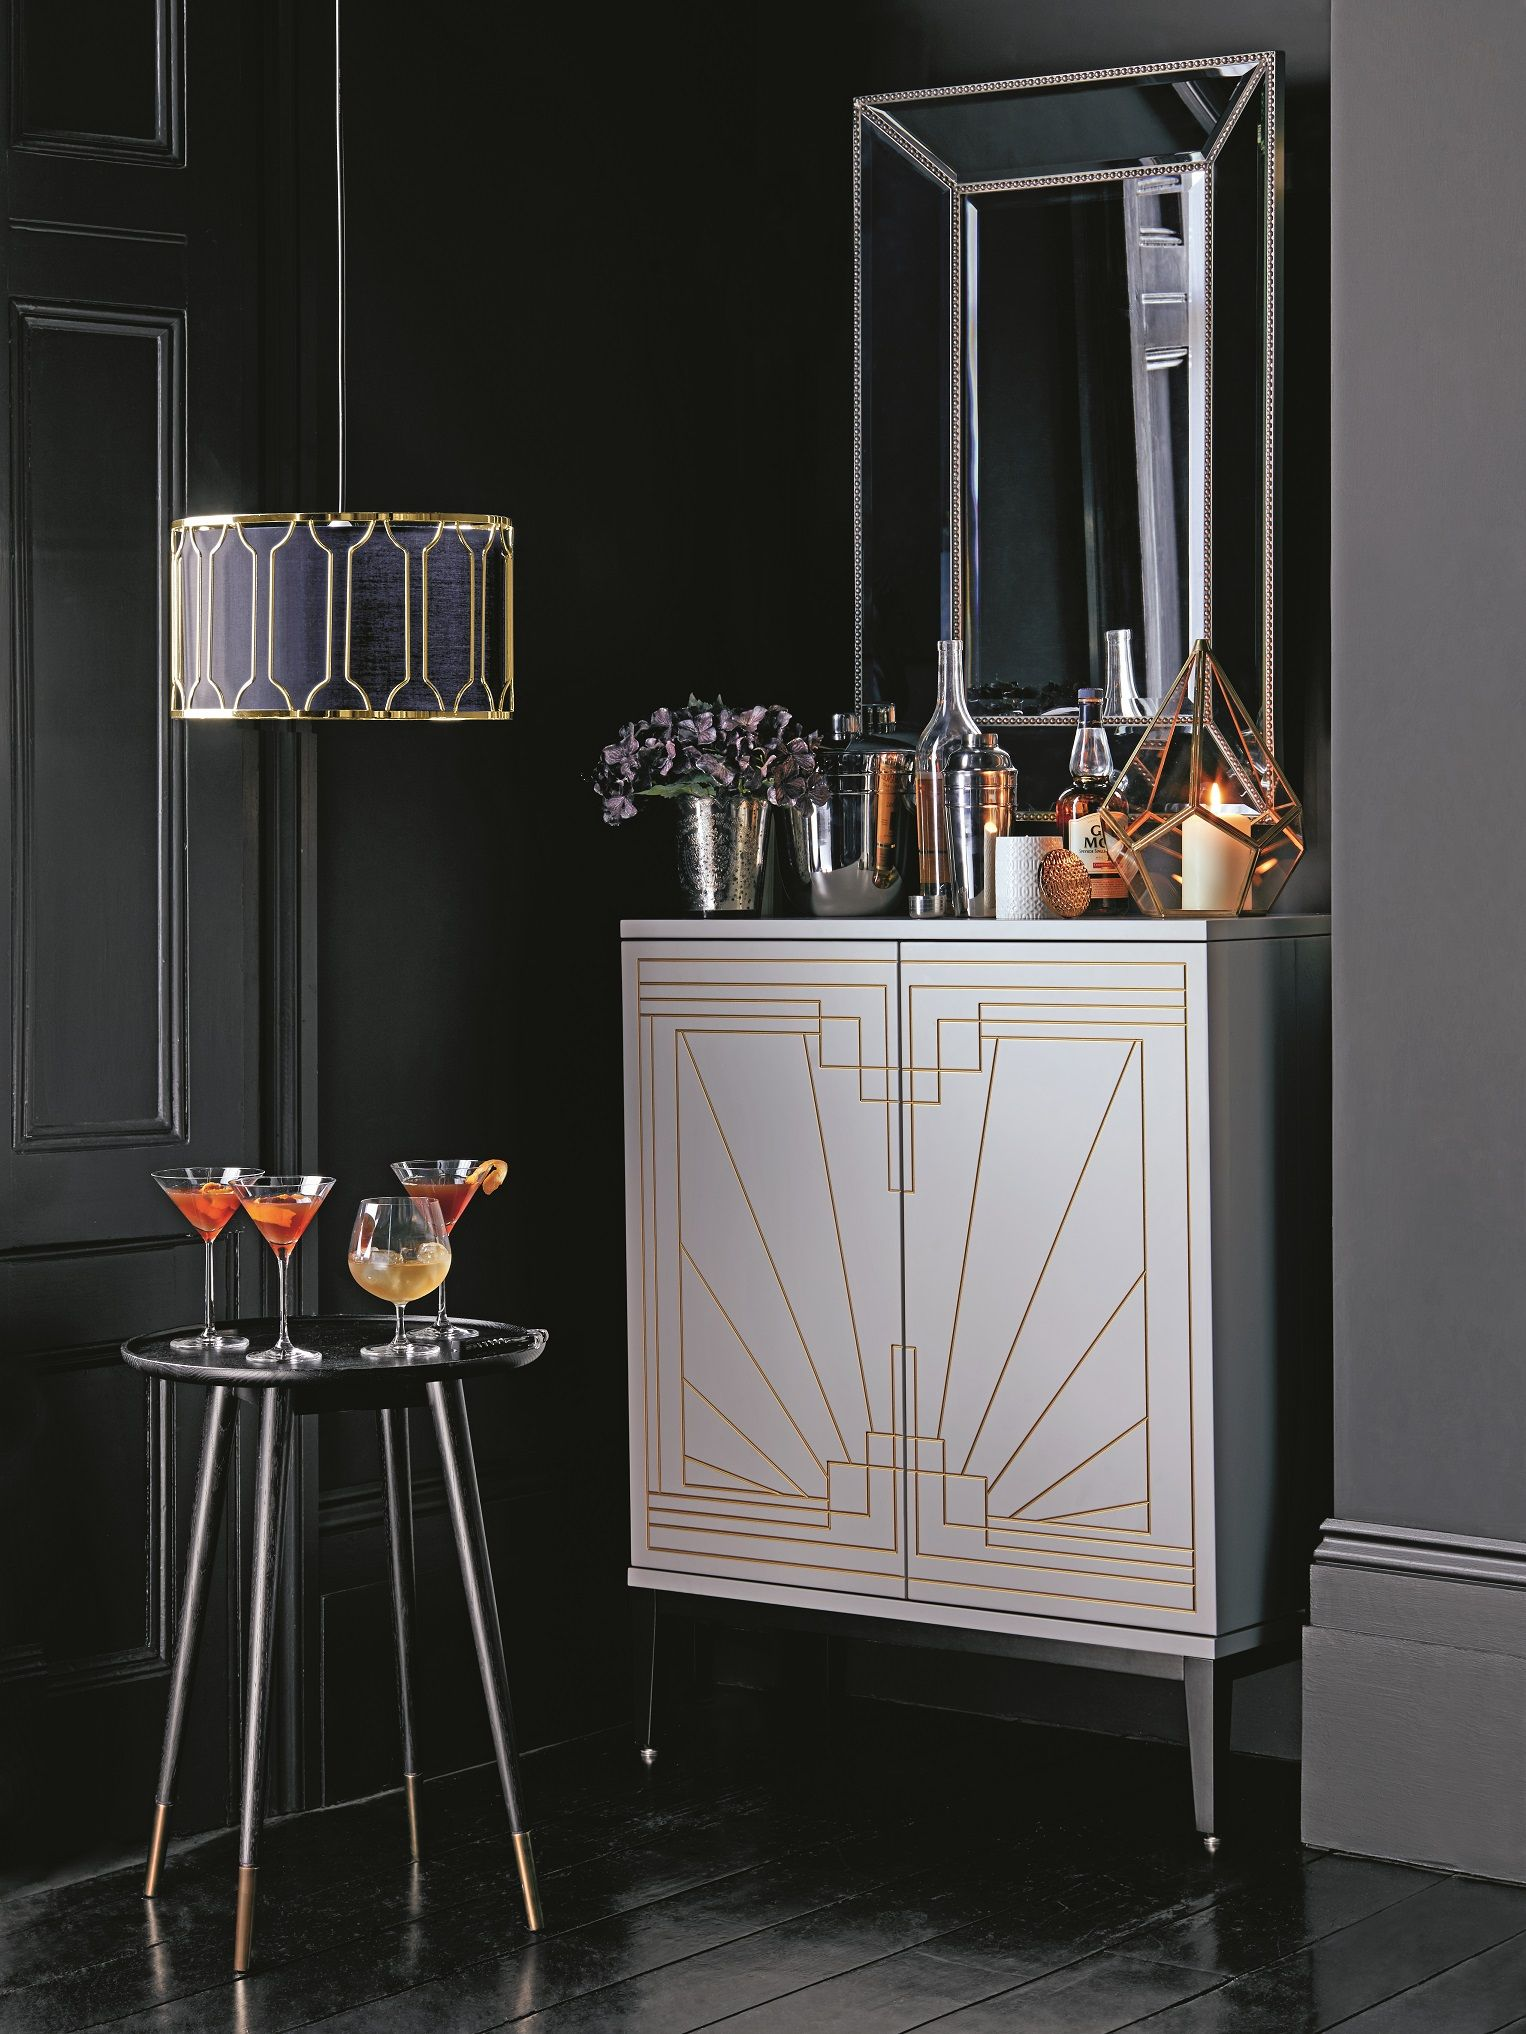 Inspired By Art Deco Styling The Drinks Cabinet Has Fully Fold Out Doors With Storage For